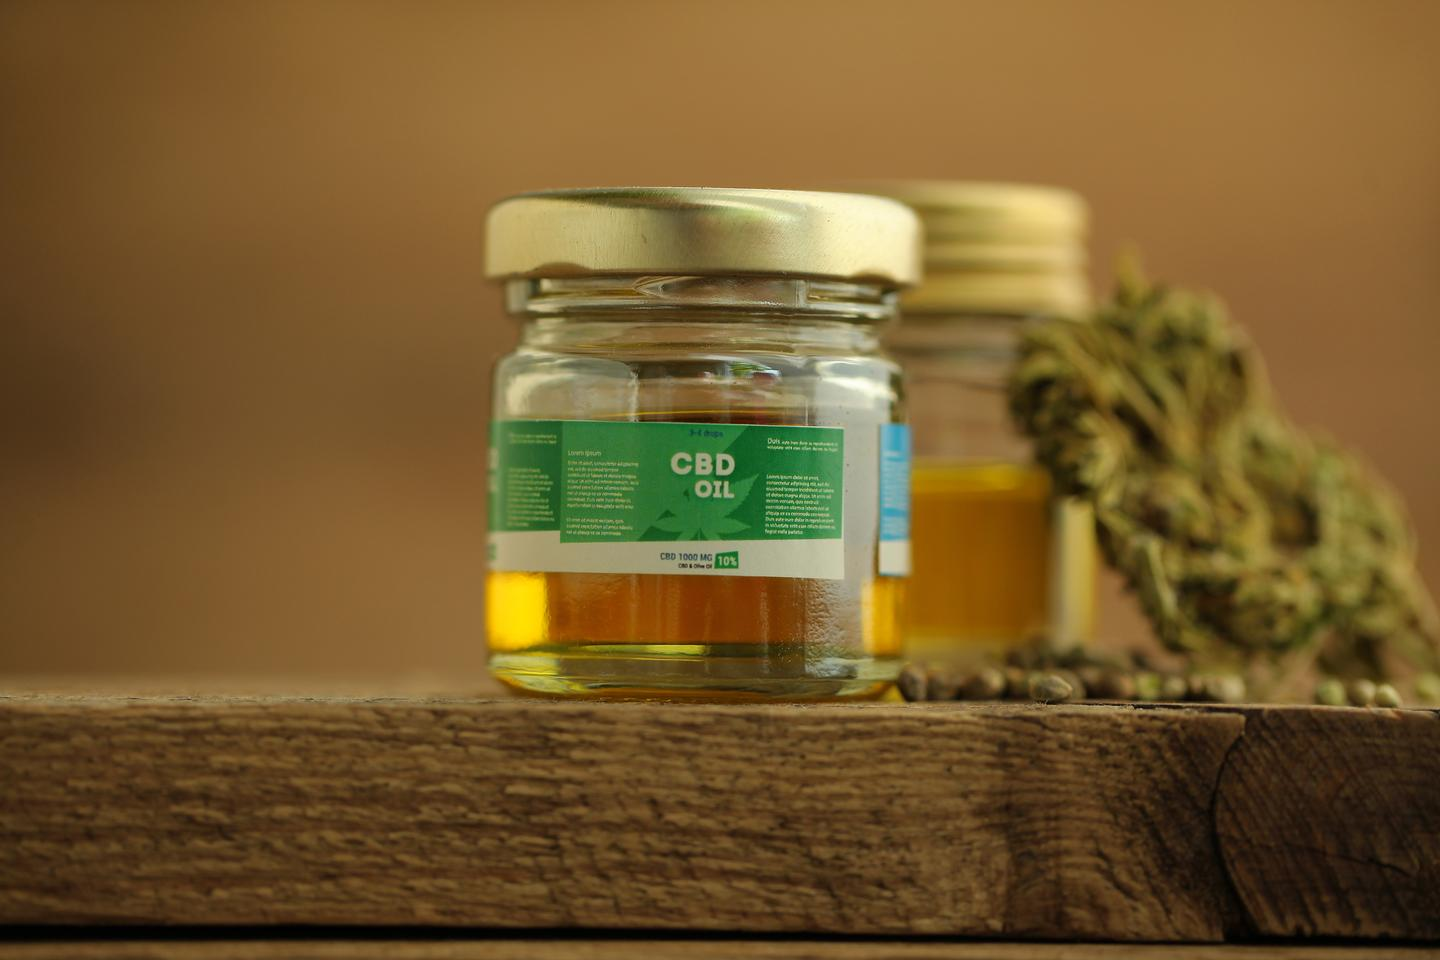 A novel microencapsulation method increased peak concentrations of CBD in the brain by 300 percent compared to CBD oil in animal tests